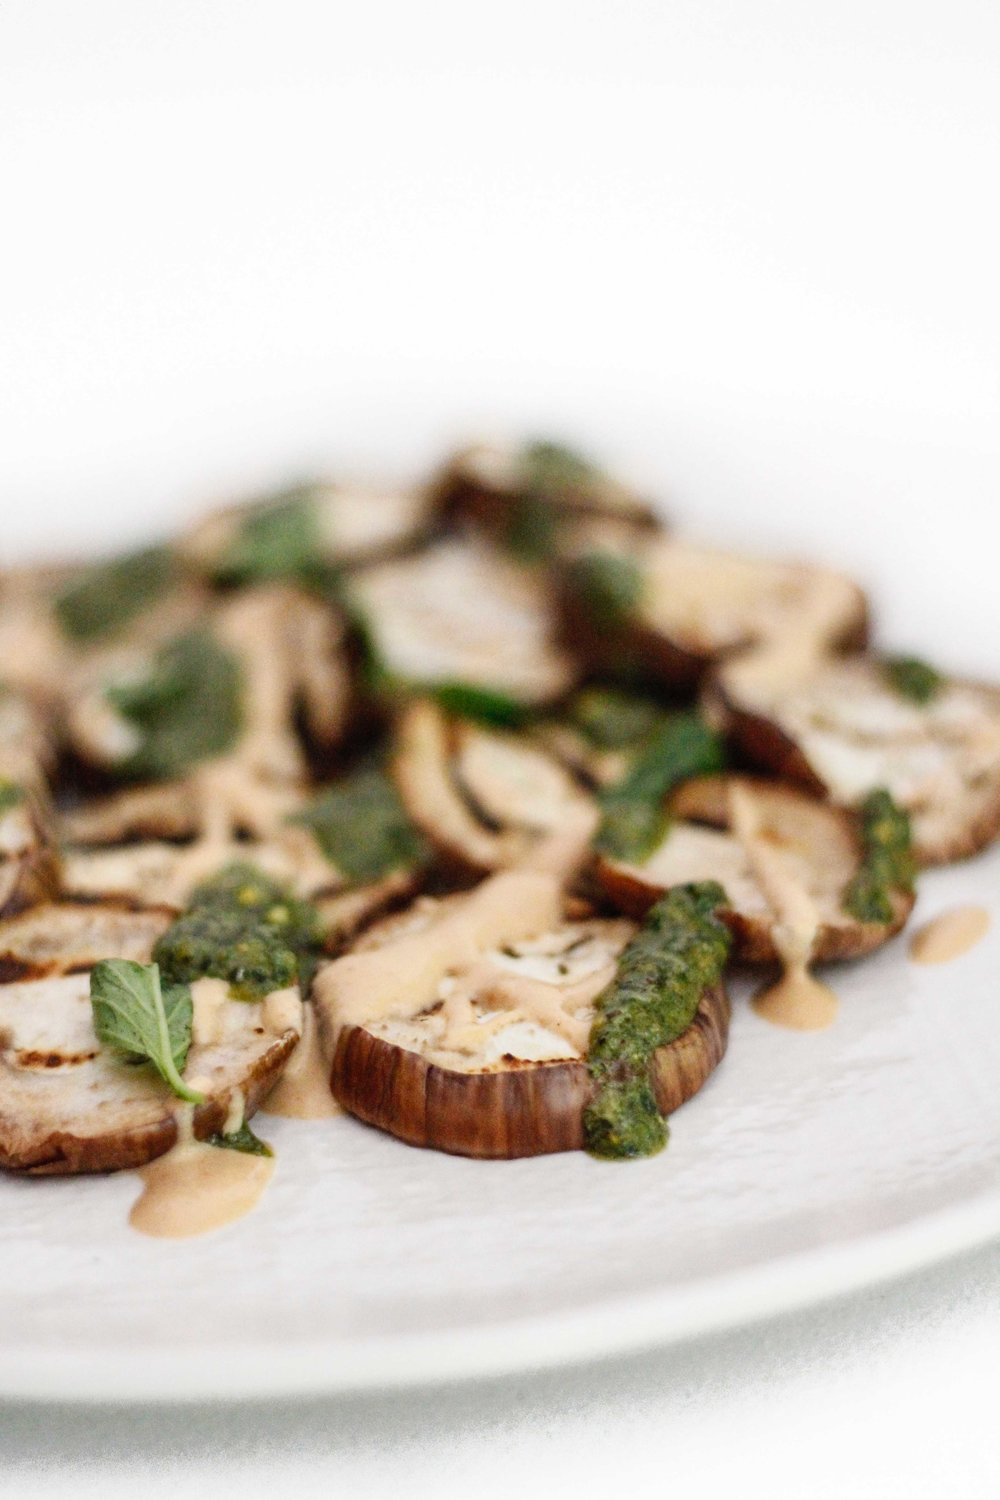 Grilled eggplant with spicy tahini and pesto